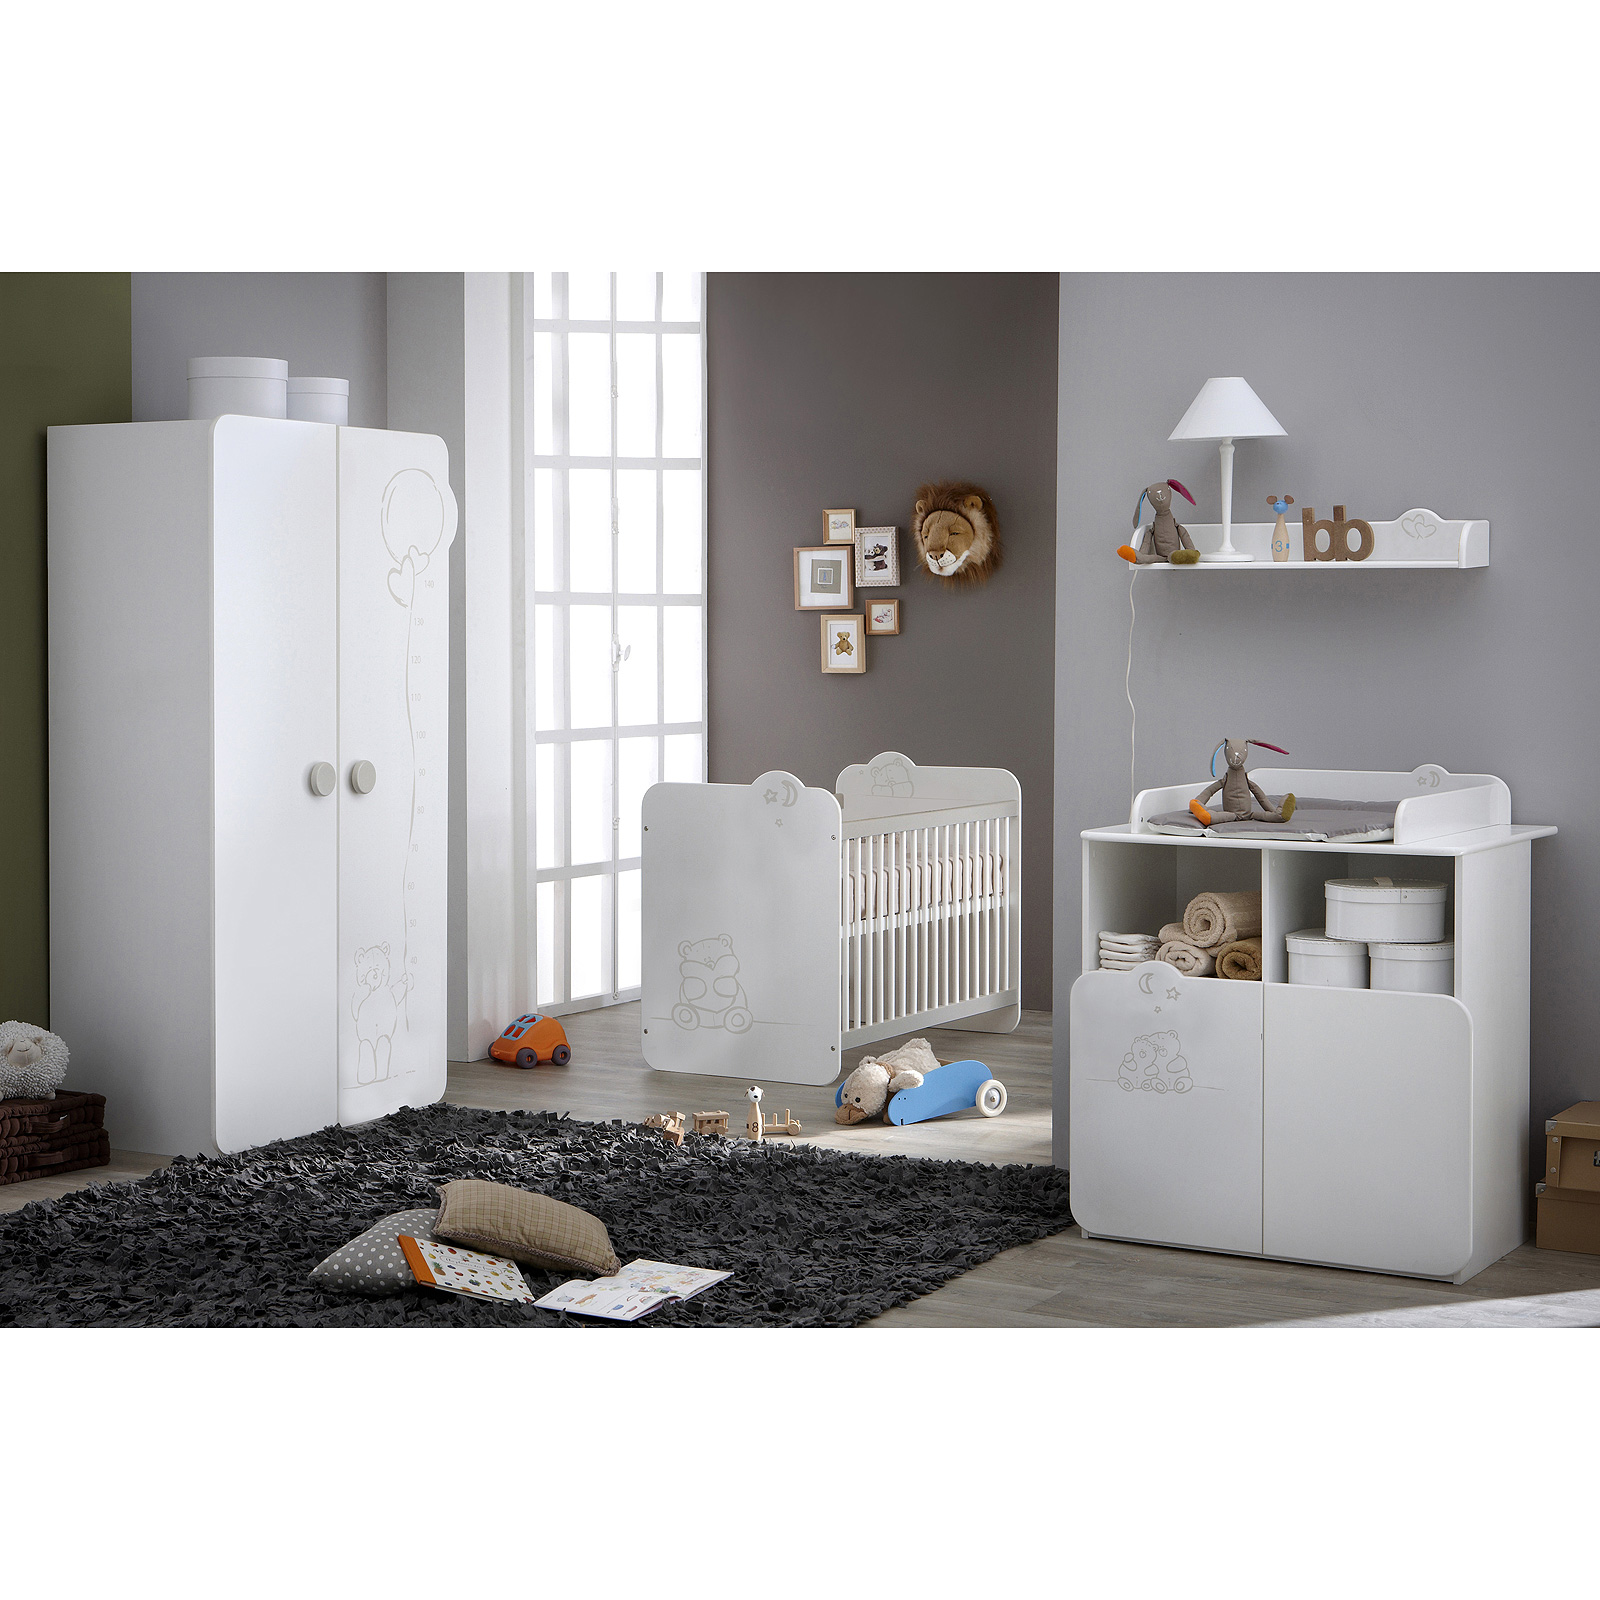 babyzimmer teddy kinderzimmer schrank bett wei mit teddymotiv. Black Bedroom Furniture Sets. Home Design Ideas